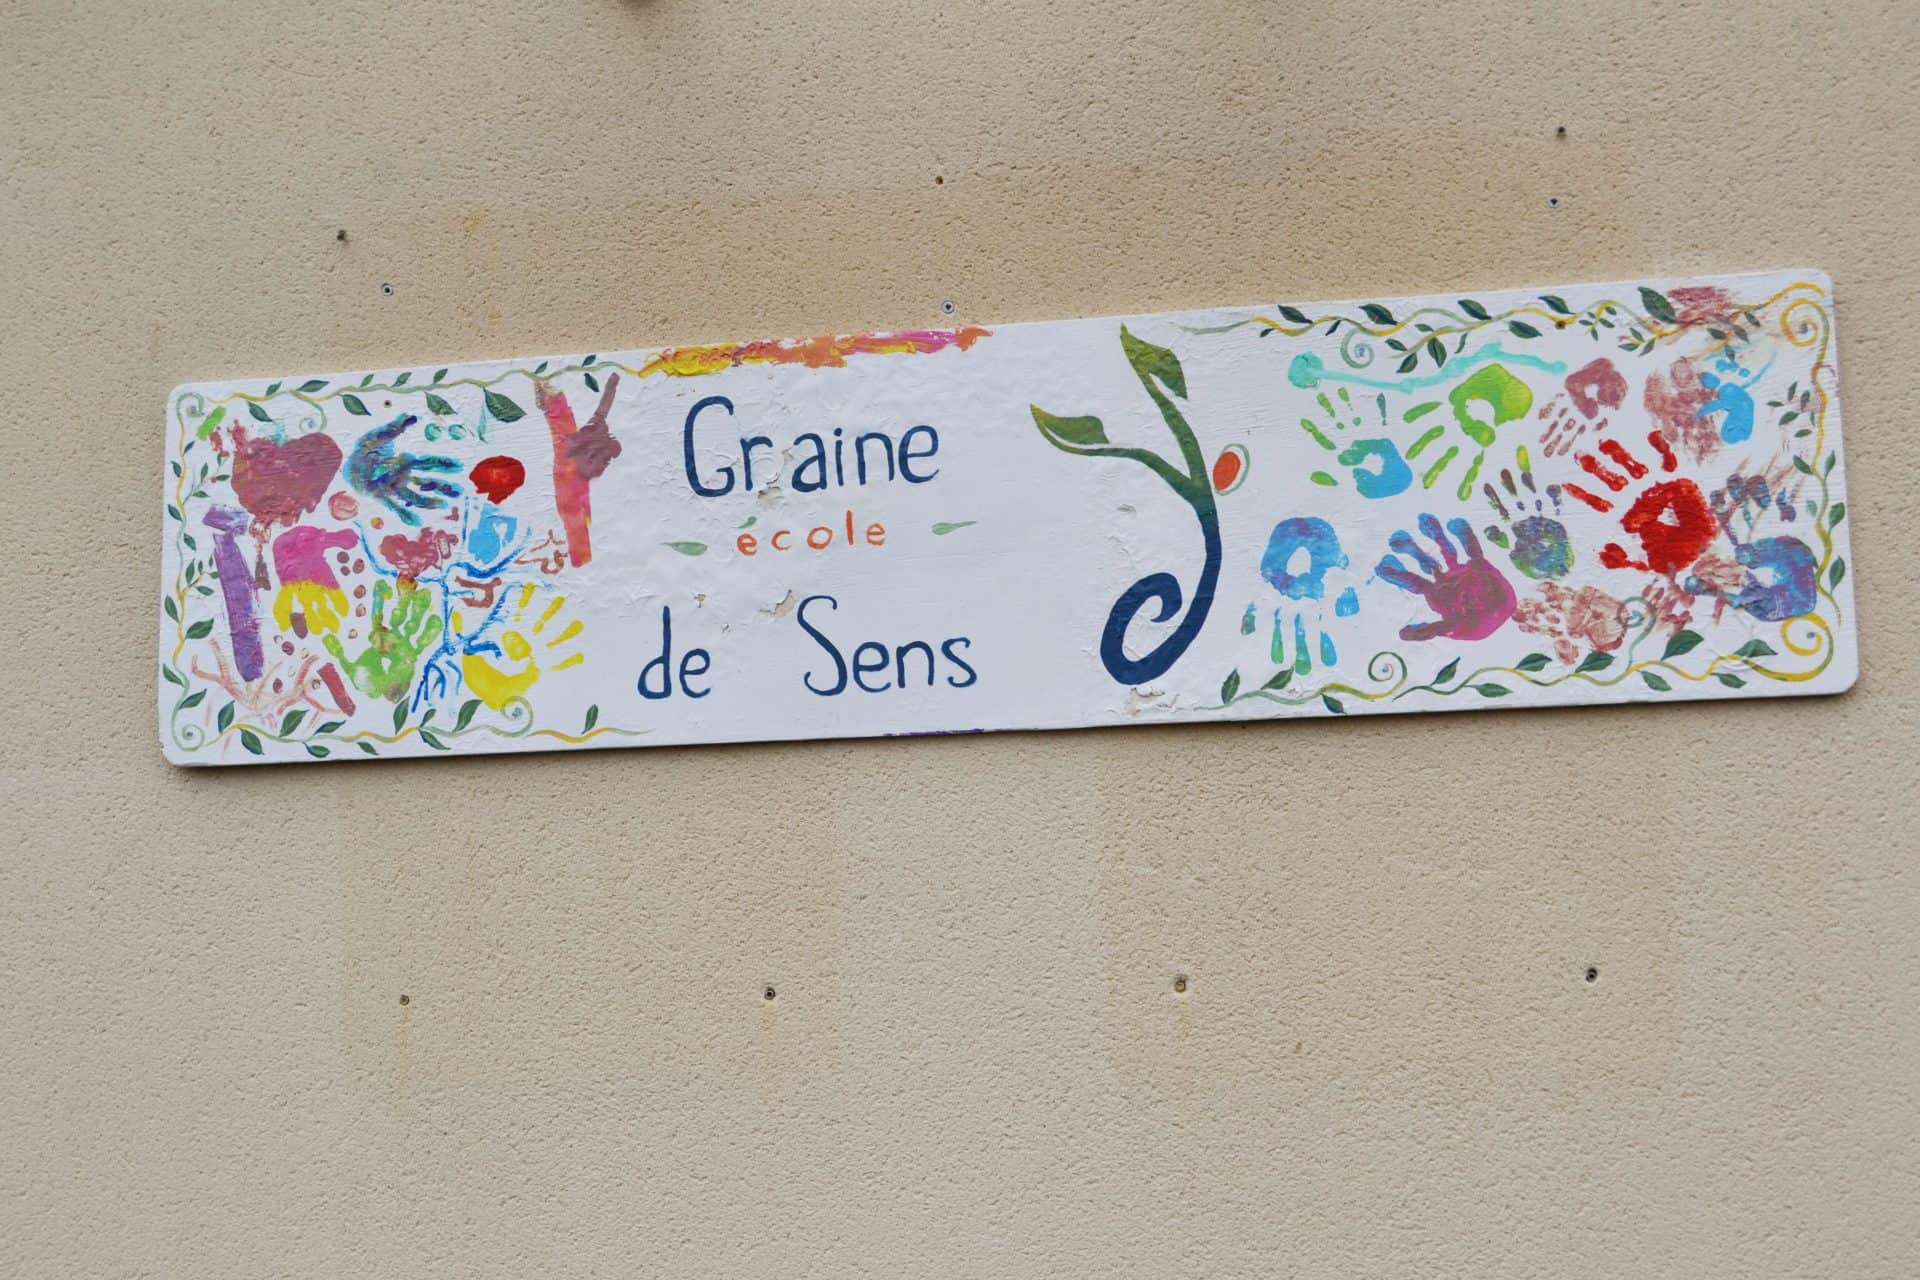 Photo pancarte école Graine de Sens